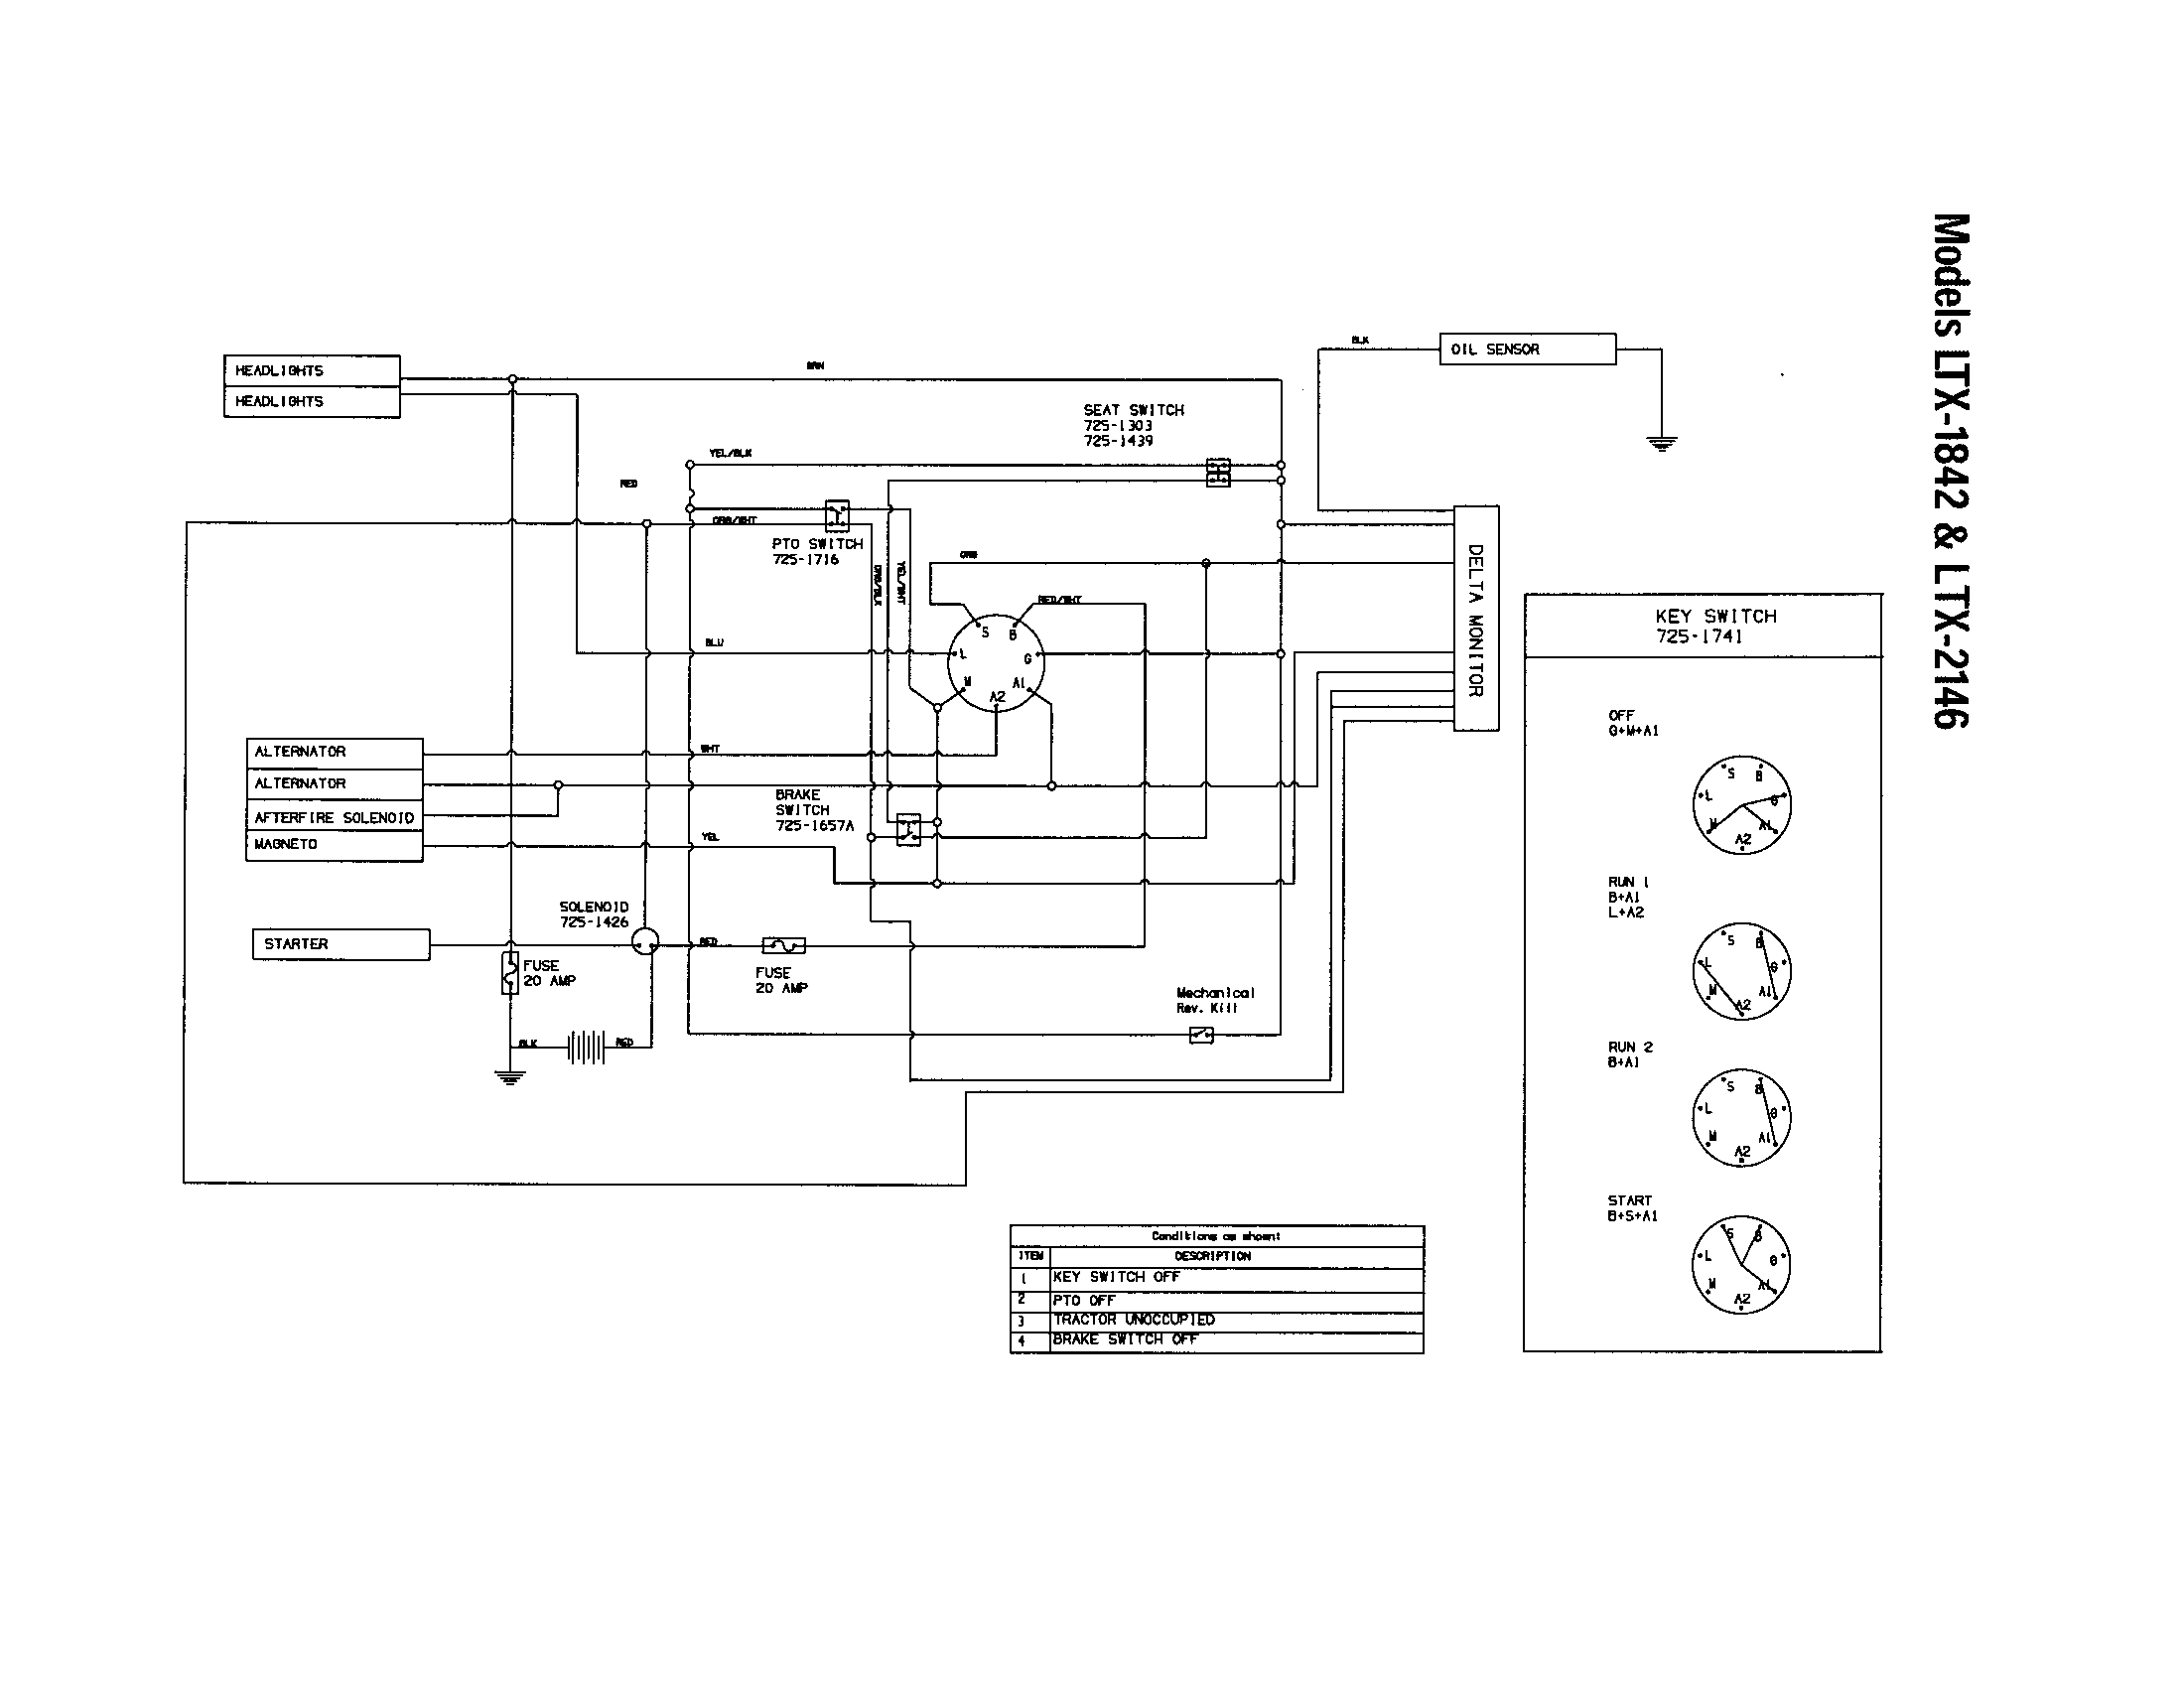 wiring diagram diagram amp parts list for model 13ap609g063 john deere riding mower wiring diagram